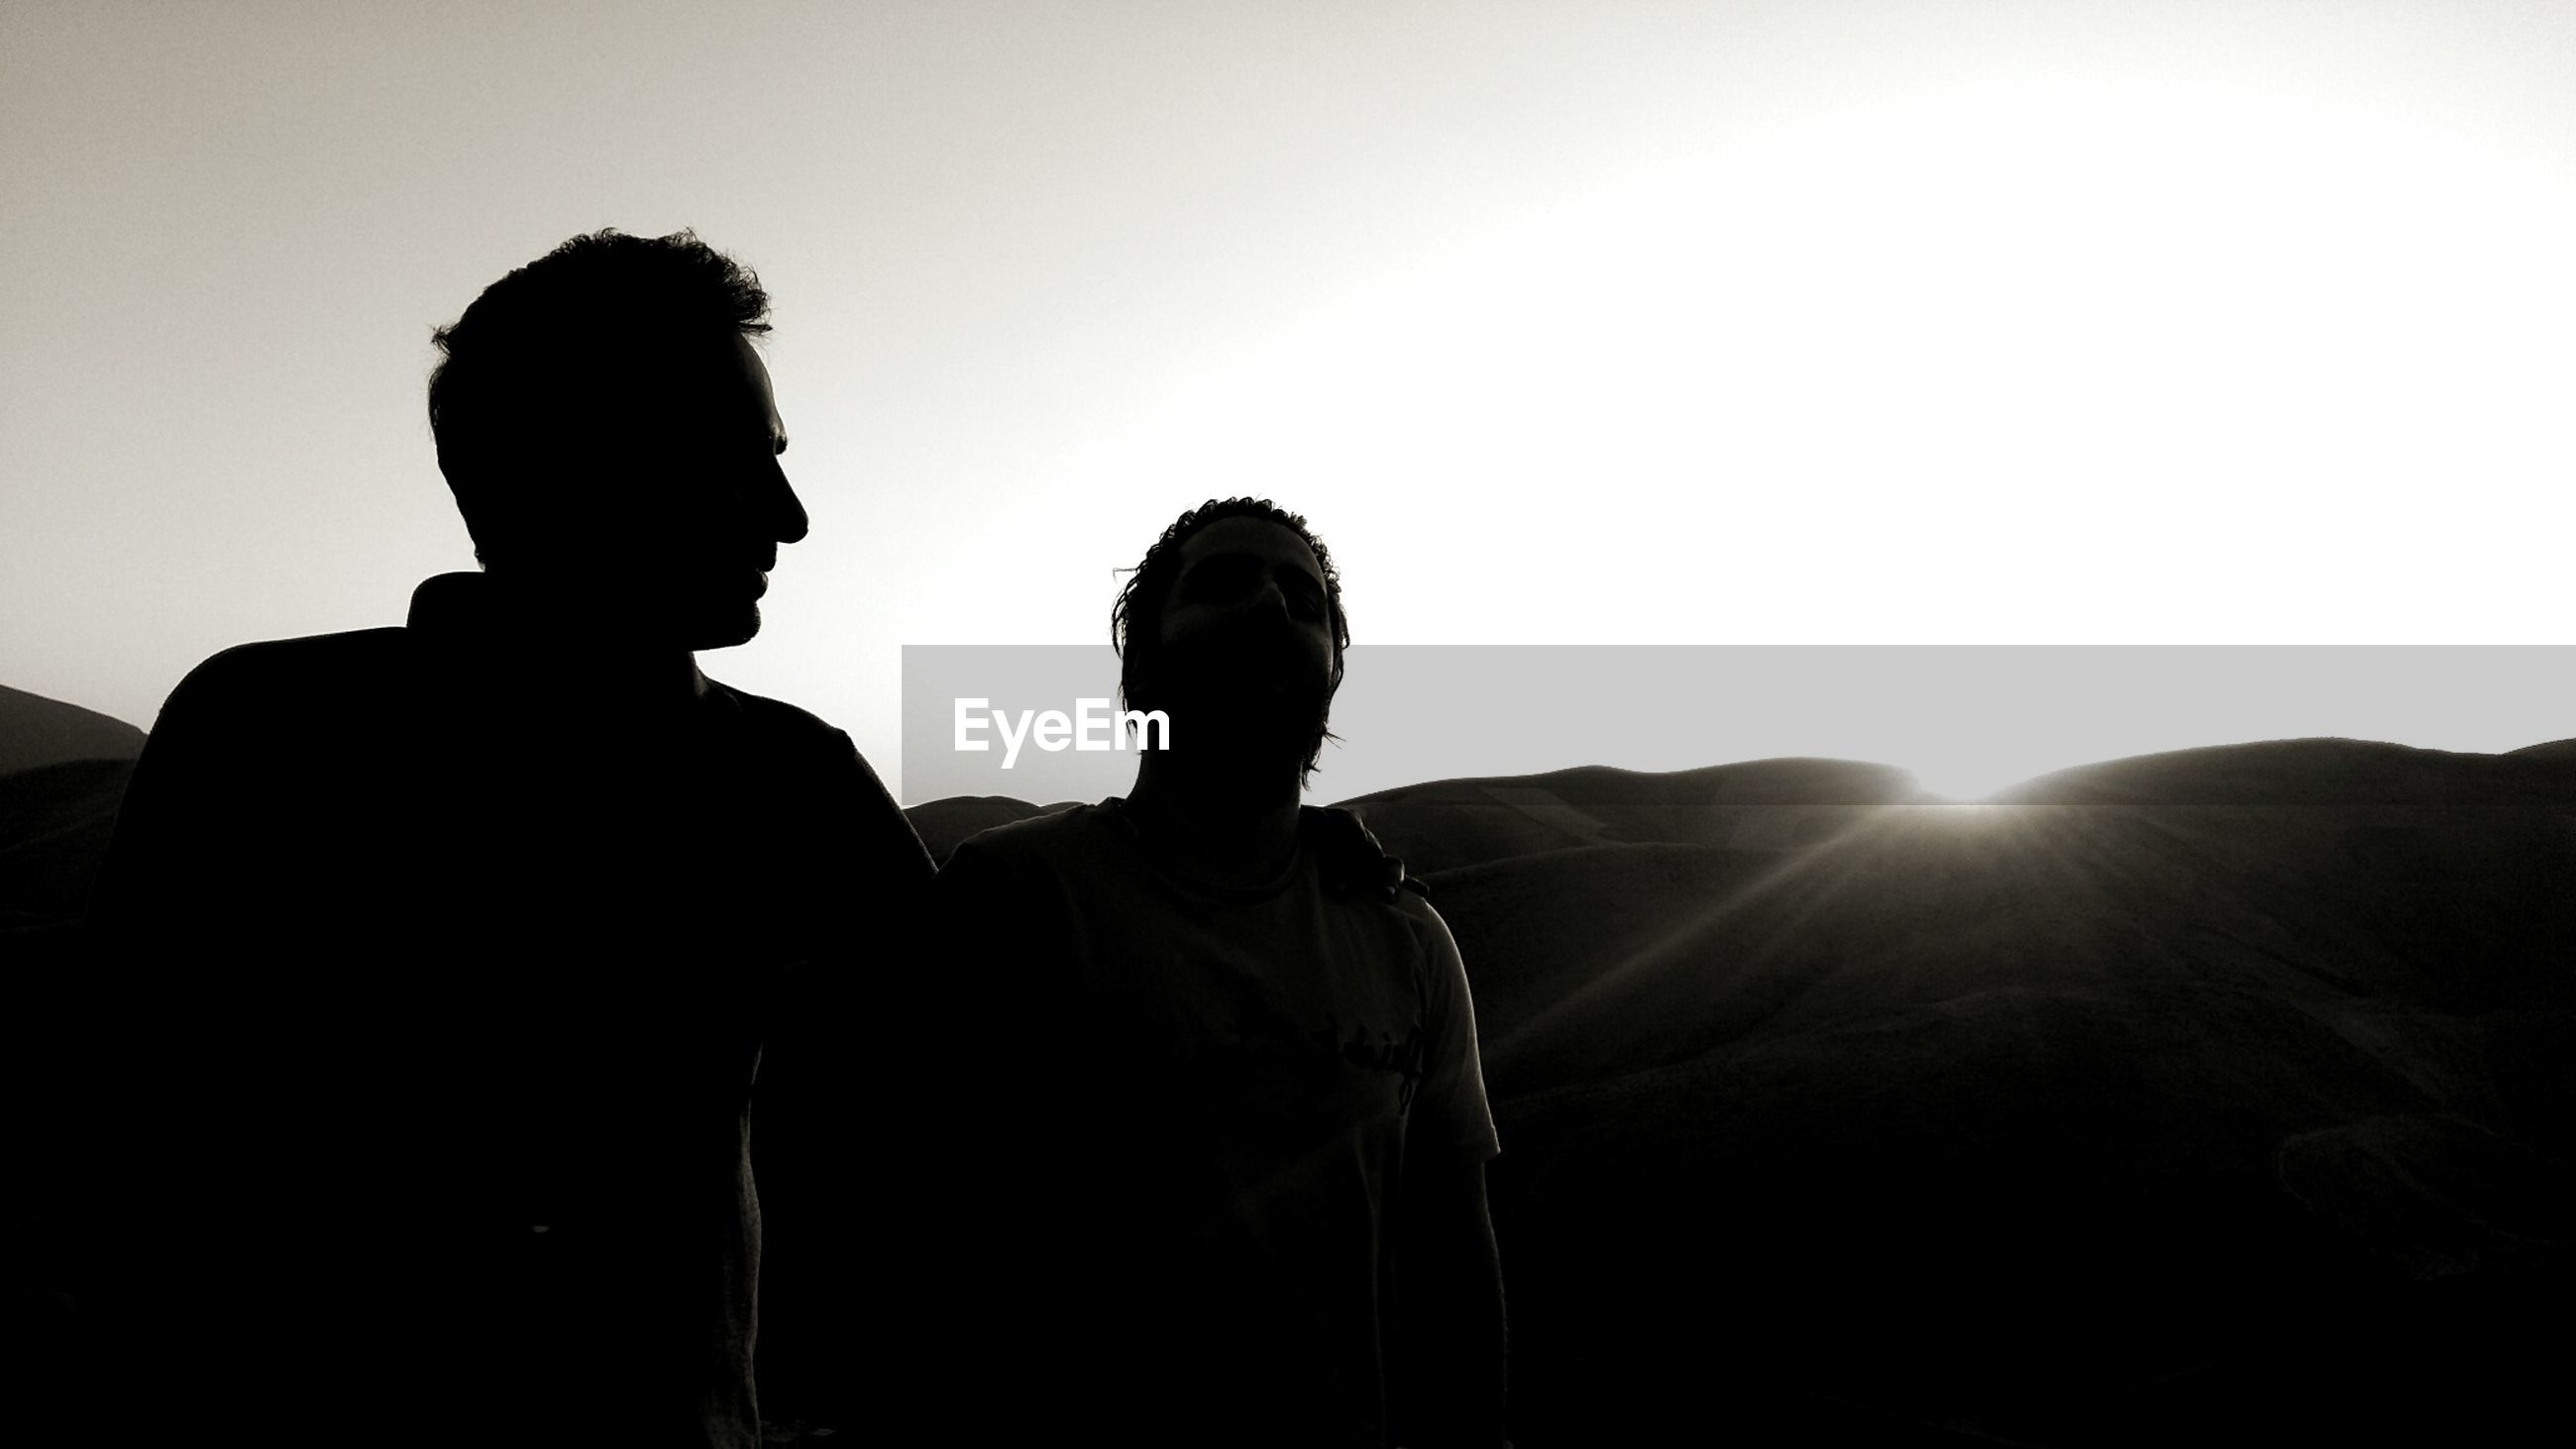 Silhouette friends standing on mountain against sky during sunset